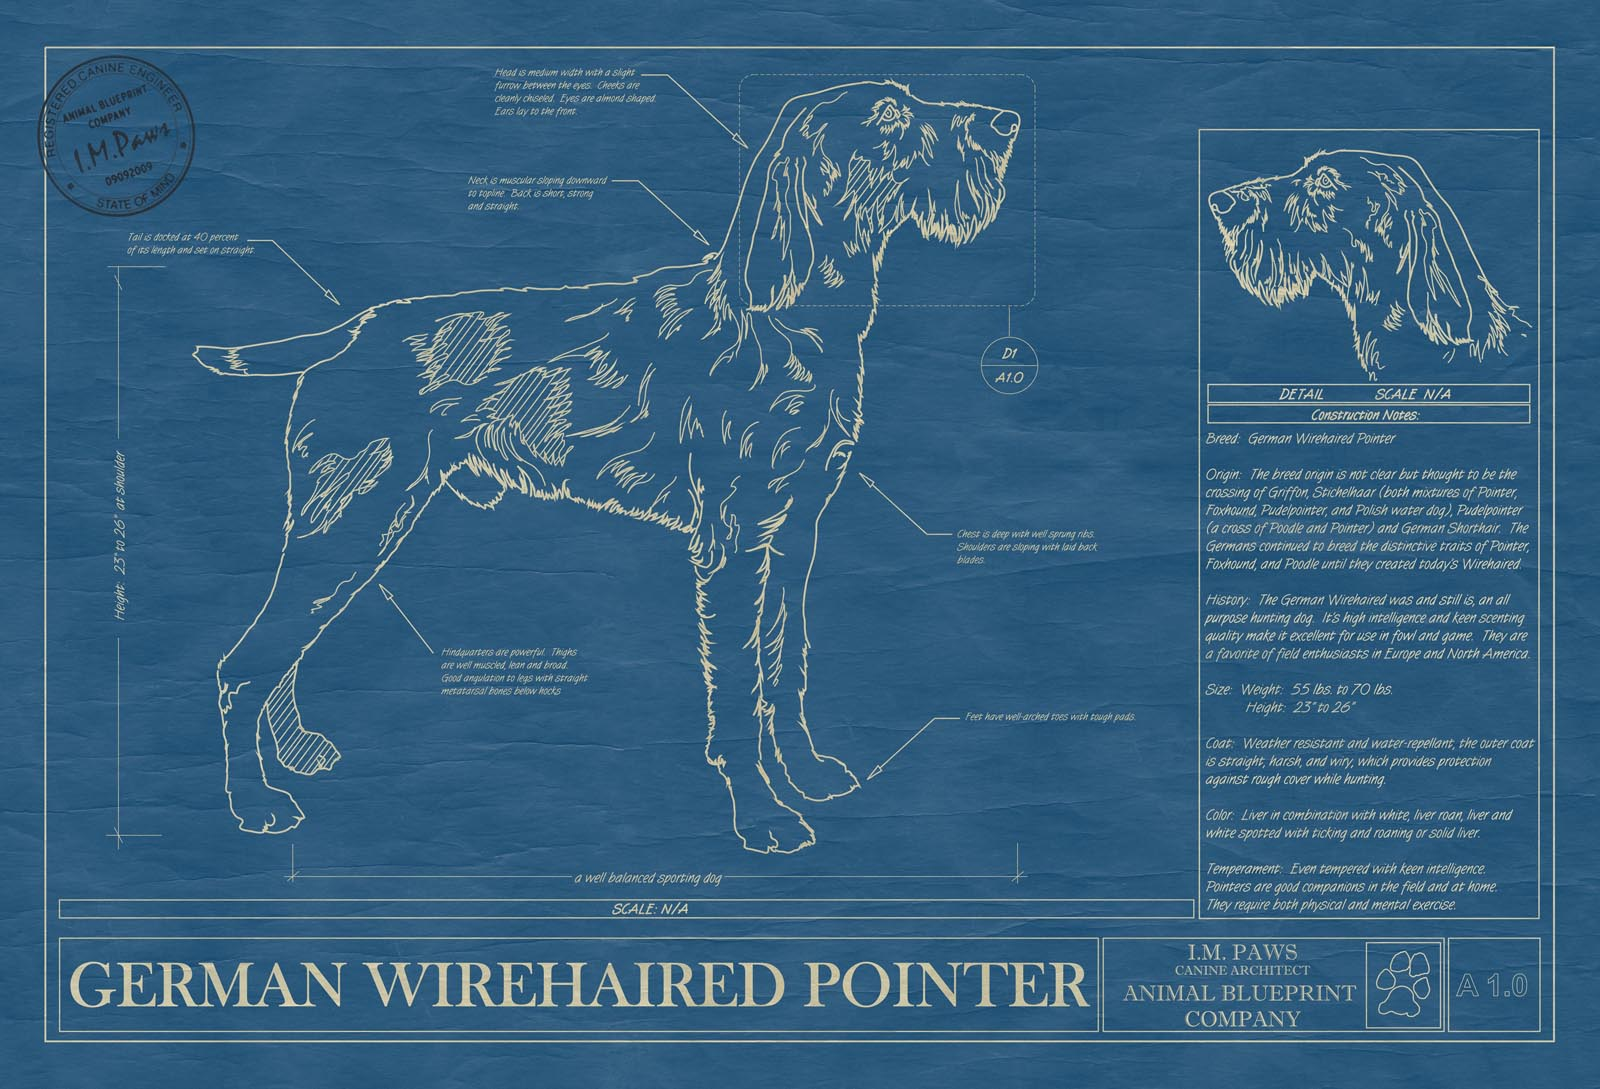 German wirehaired pointer animal blueprint company german wirehaired pointer dog blueprint malvernweather Gallery